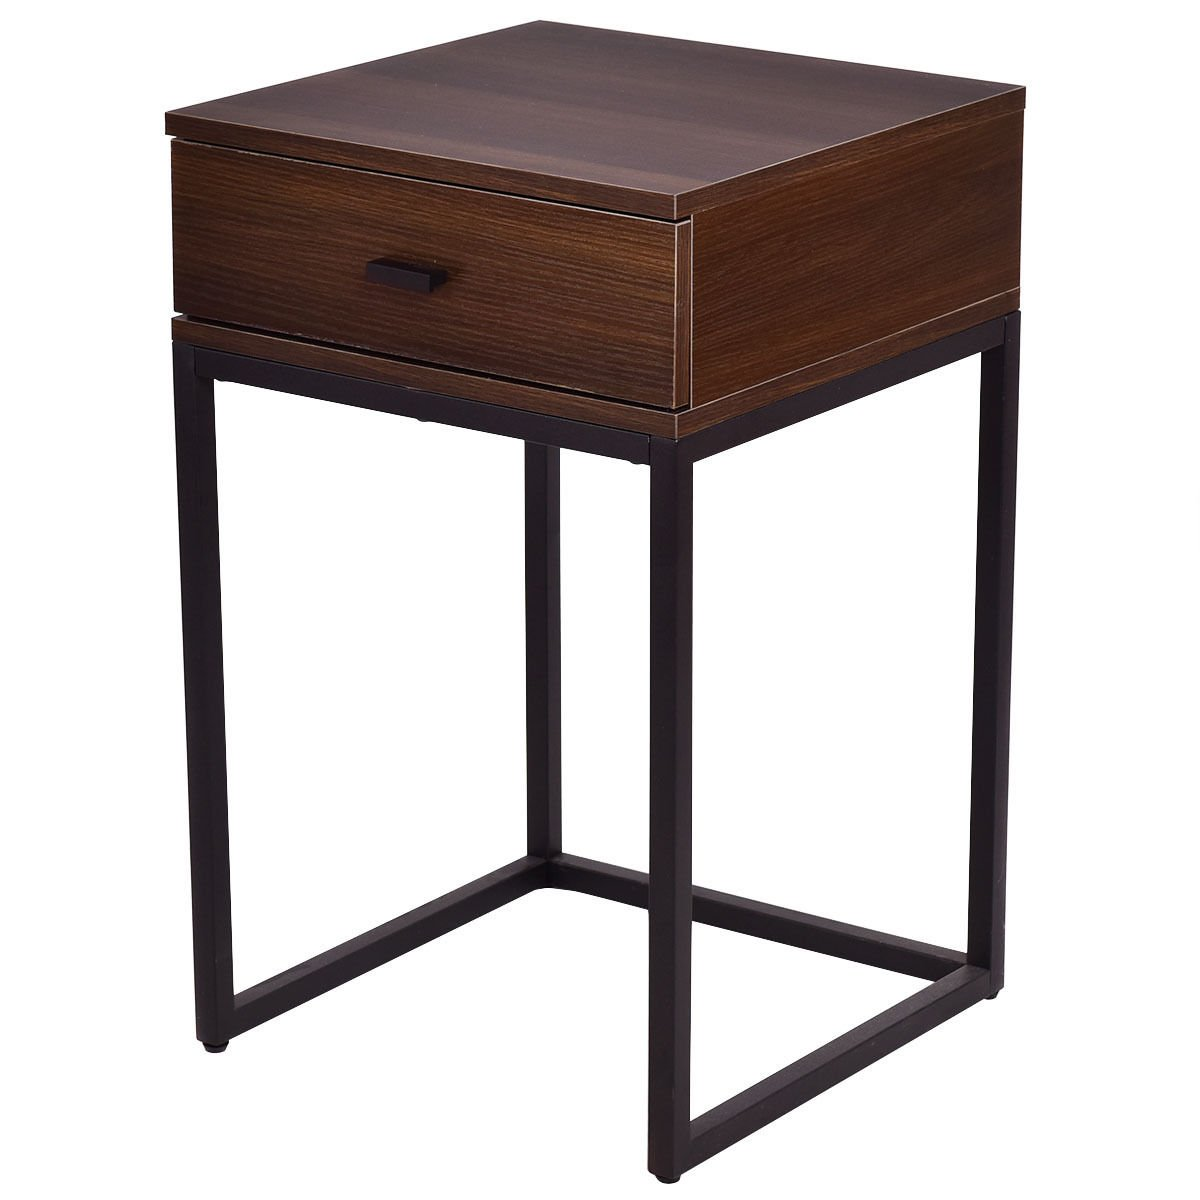 Nesting Table Coffee Table Side Table End Table Metal Frame Wood Glass Top 2PCS by White Bear & Brown Rabbit (Image #4)